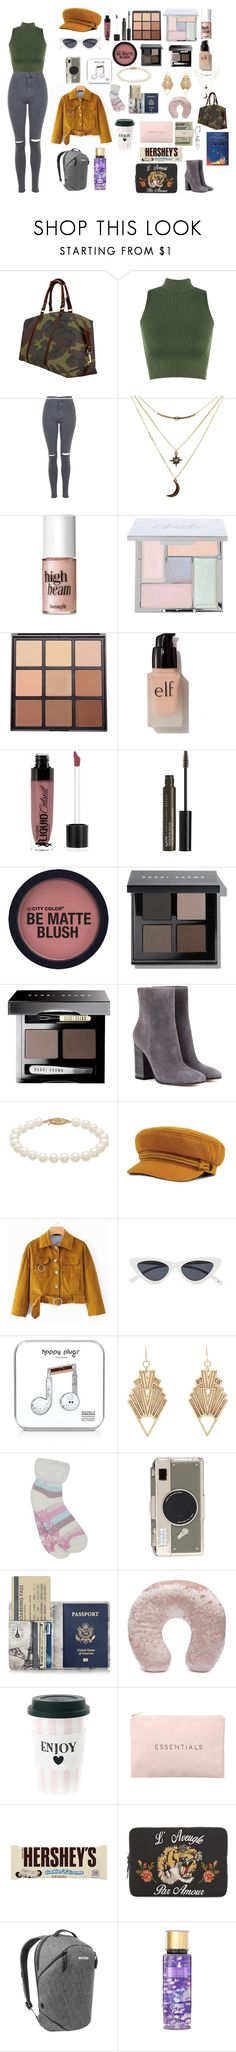 """Untitled #83"" by kmckee12 ❤ liked on Polyvore featuring WearAll, Topshop, Charlotte Russe, Benefit, Morphe, e.l.f., Wet n Wild, NYX, Bobbi Brown Cosmetics and Gianvito Rossi"